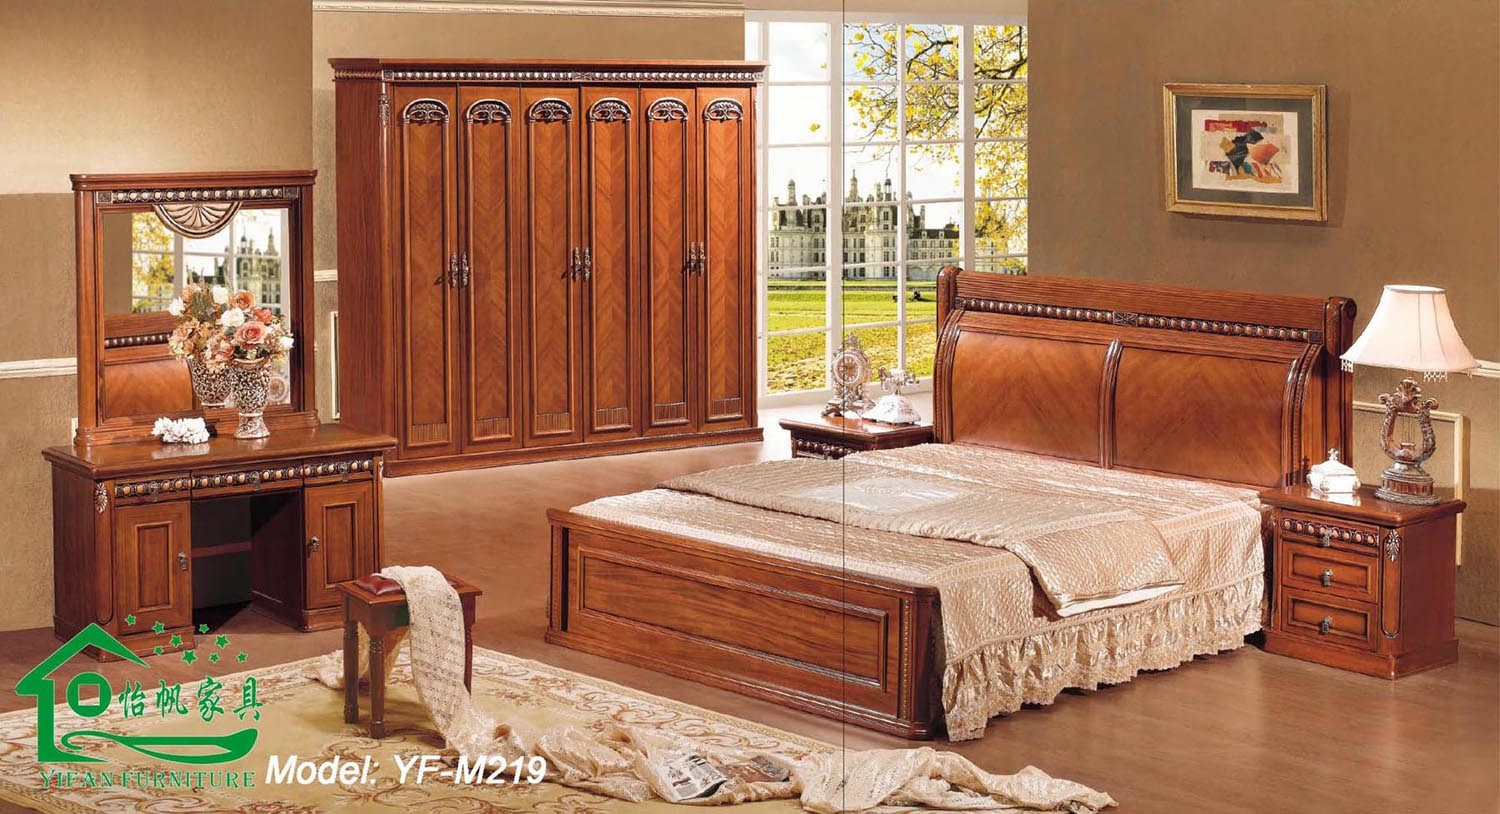 Bedroom Furniture With 80 Inch Length Wood Bed Yf M219 Wooden Bedroom